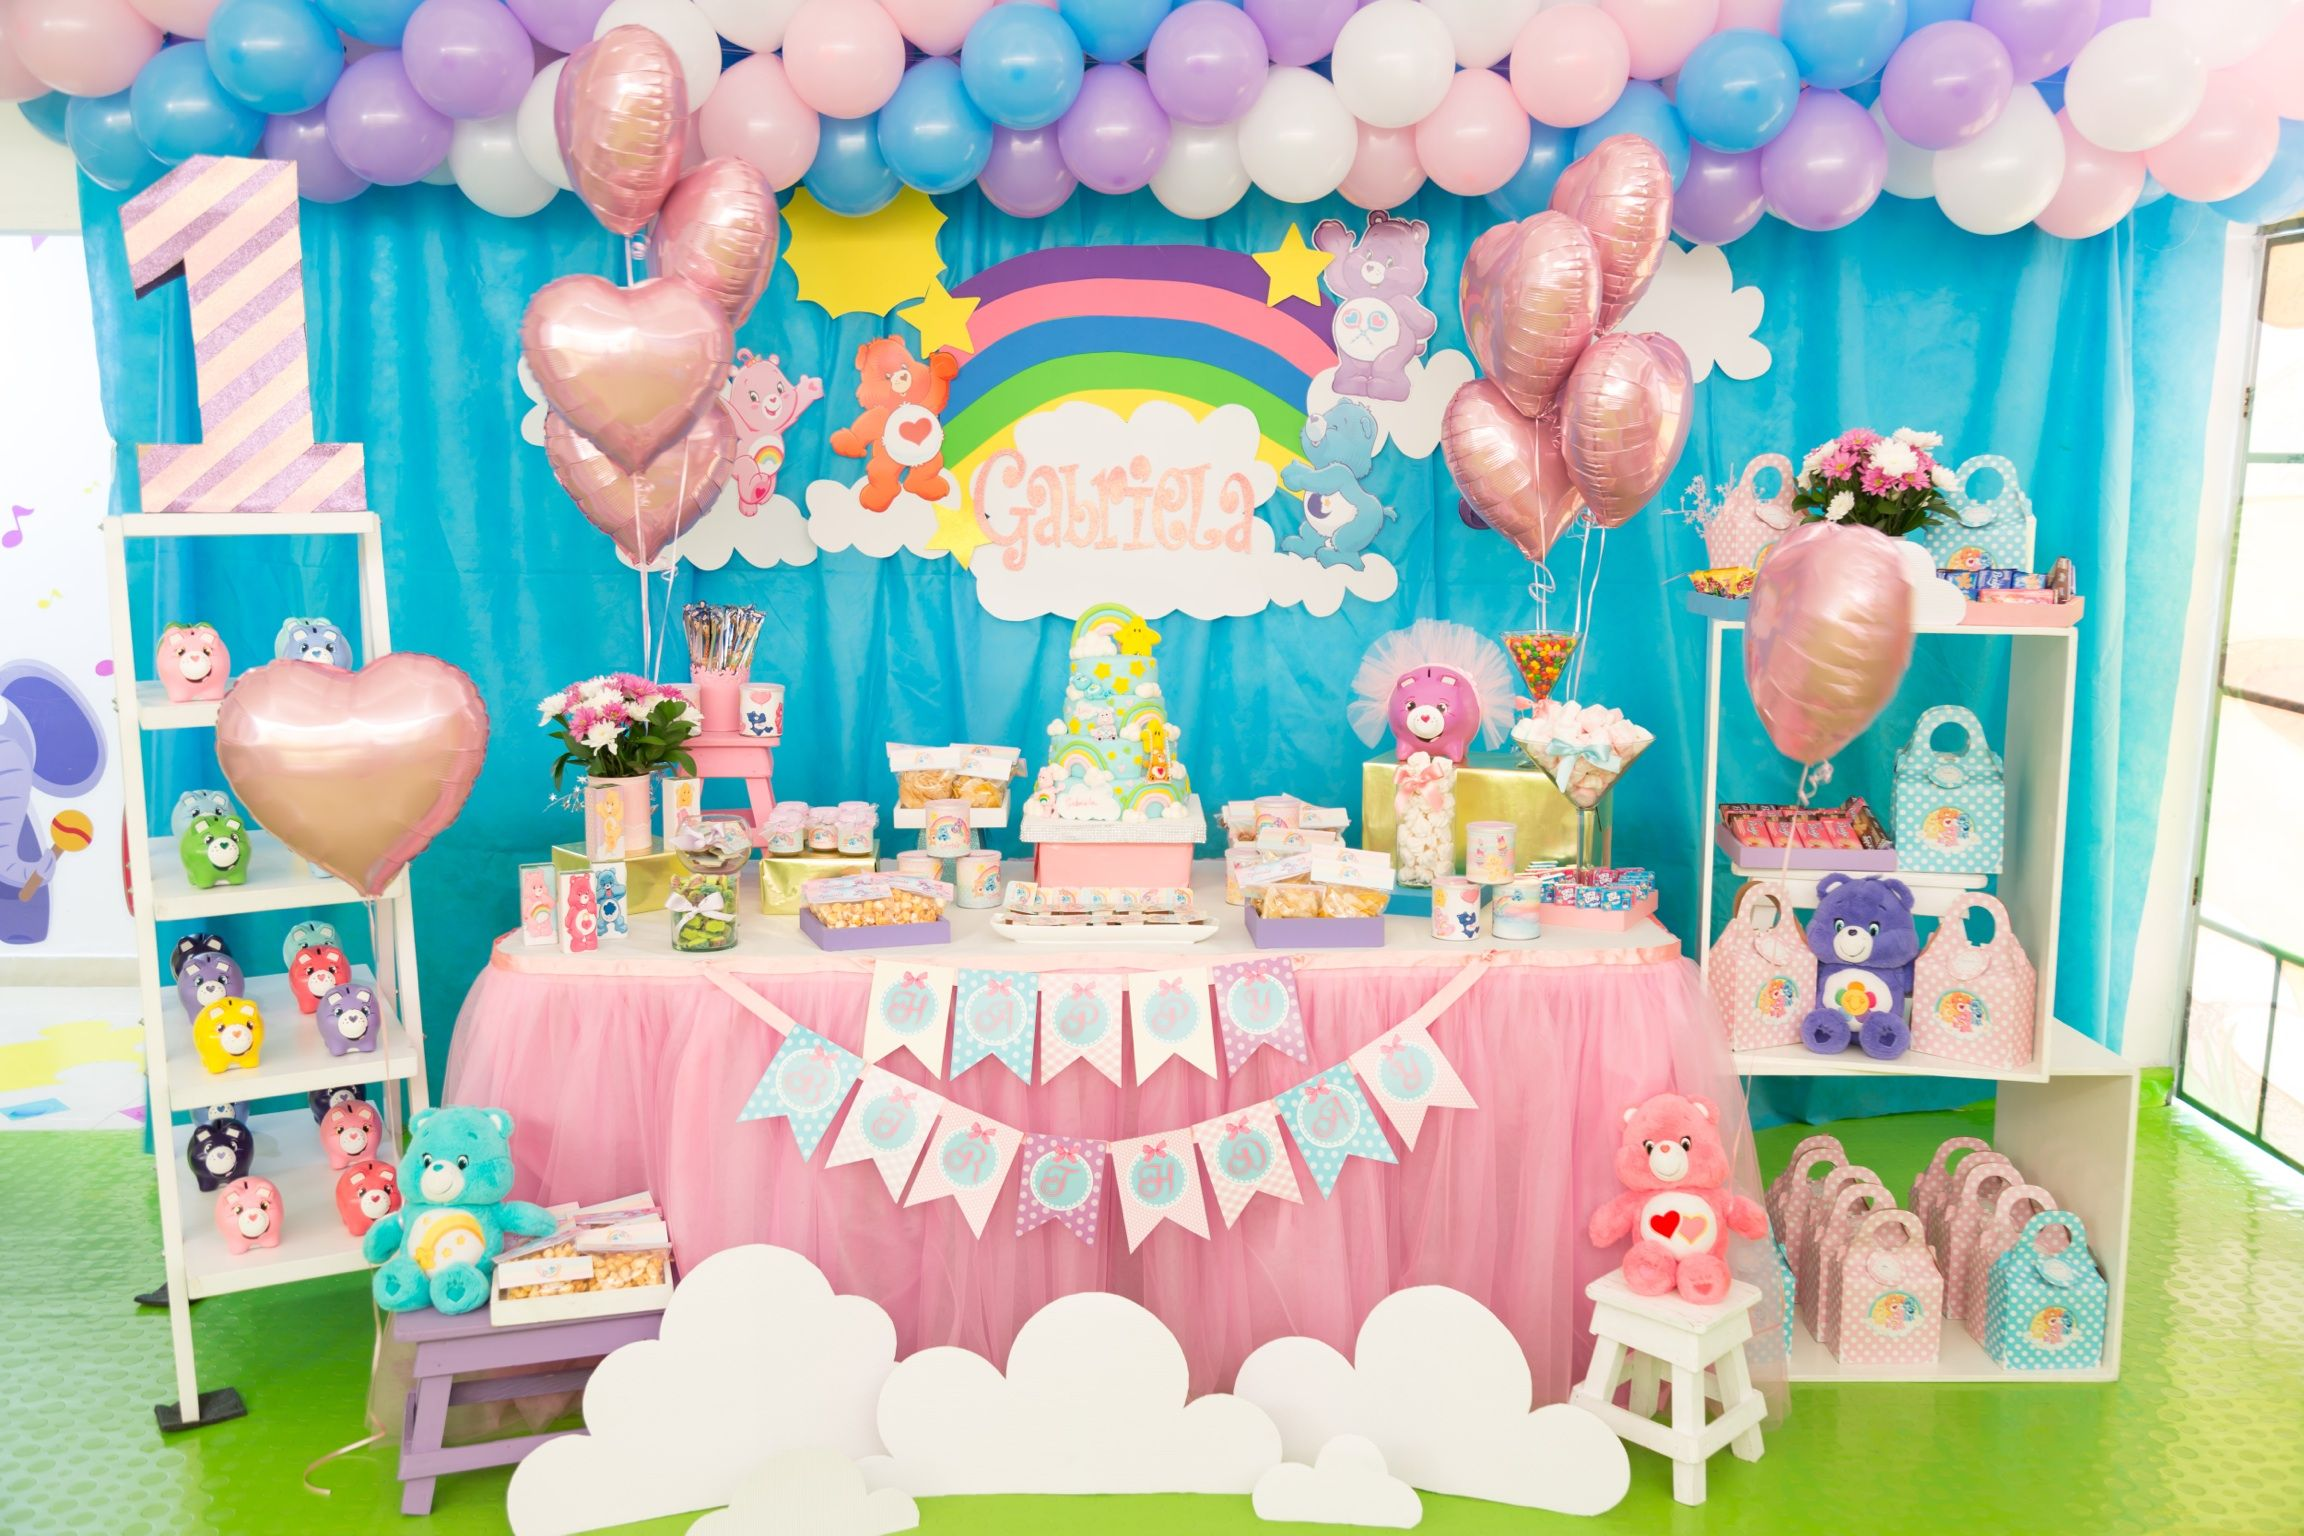 Care bears first birthday party first birthday ideas pinterest care bears first birthday party monicamarmolfo Choice Image